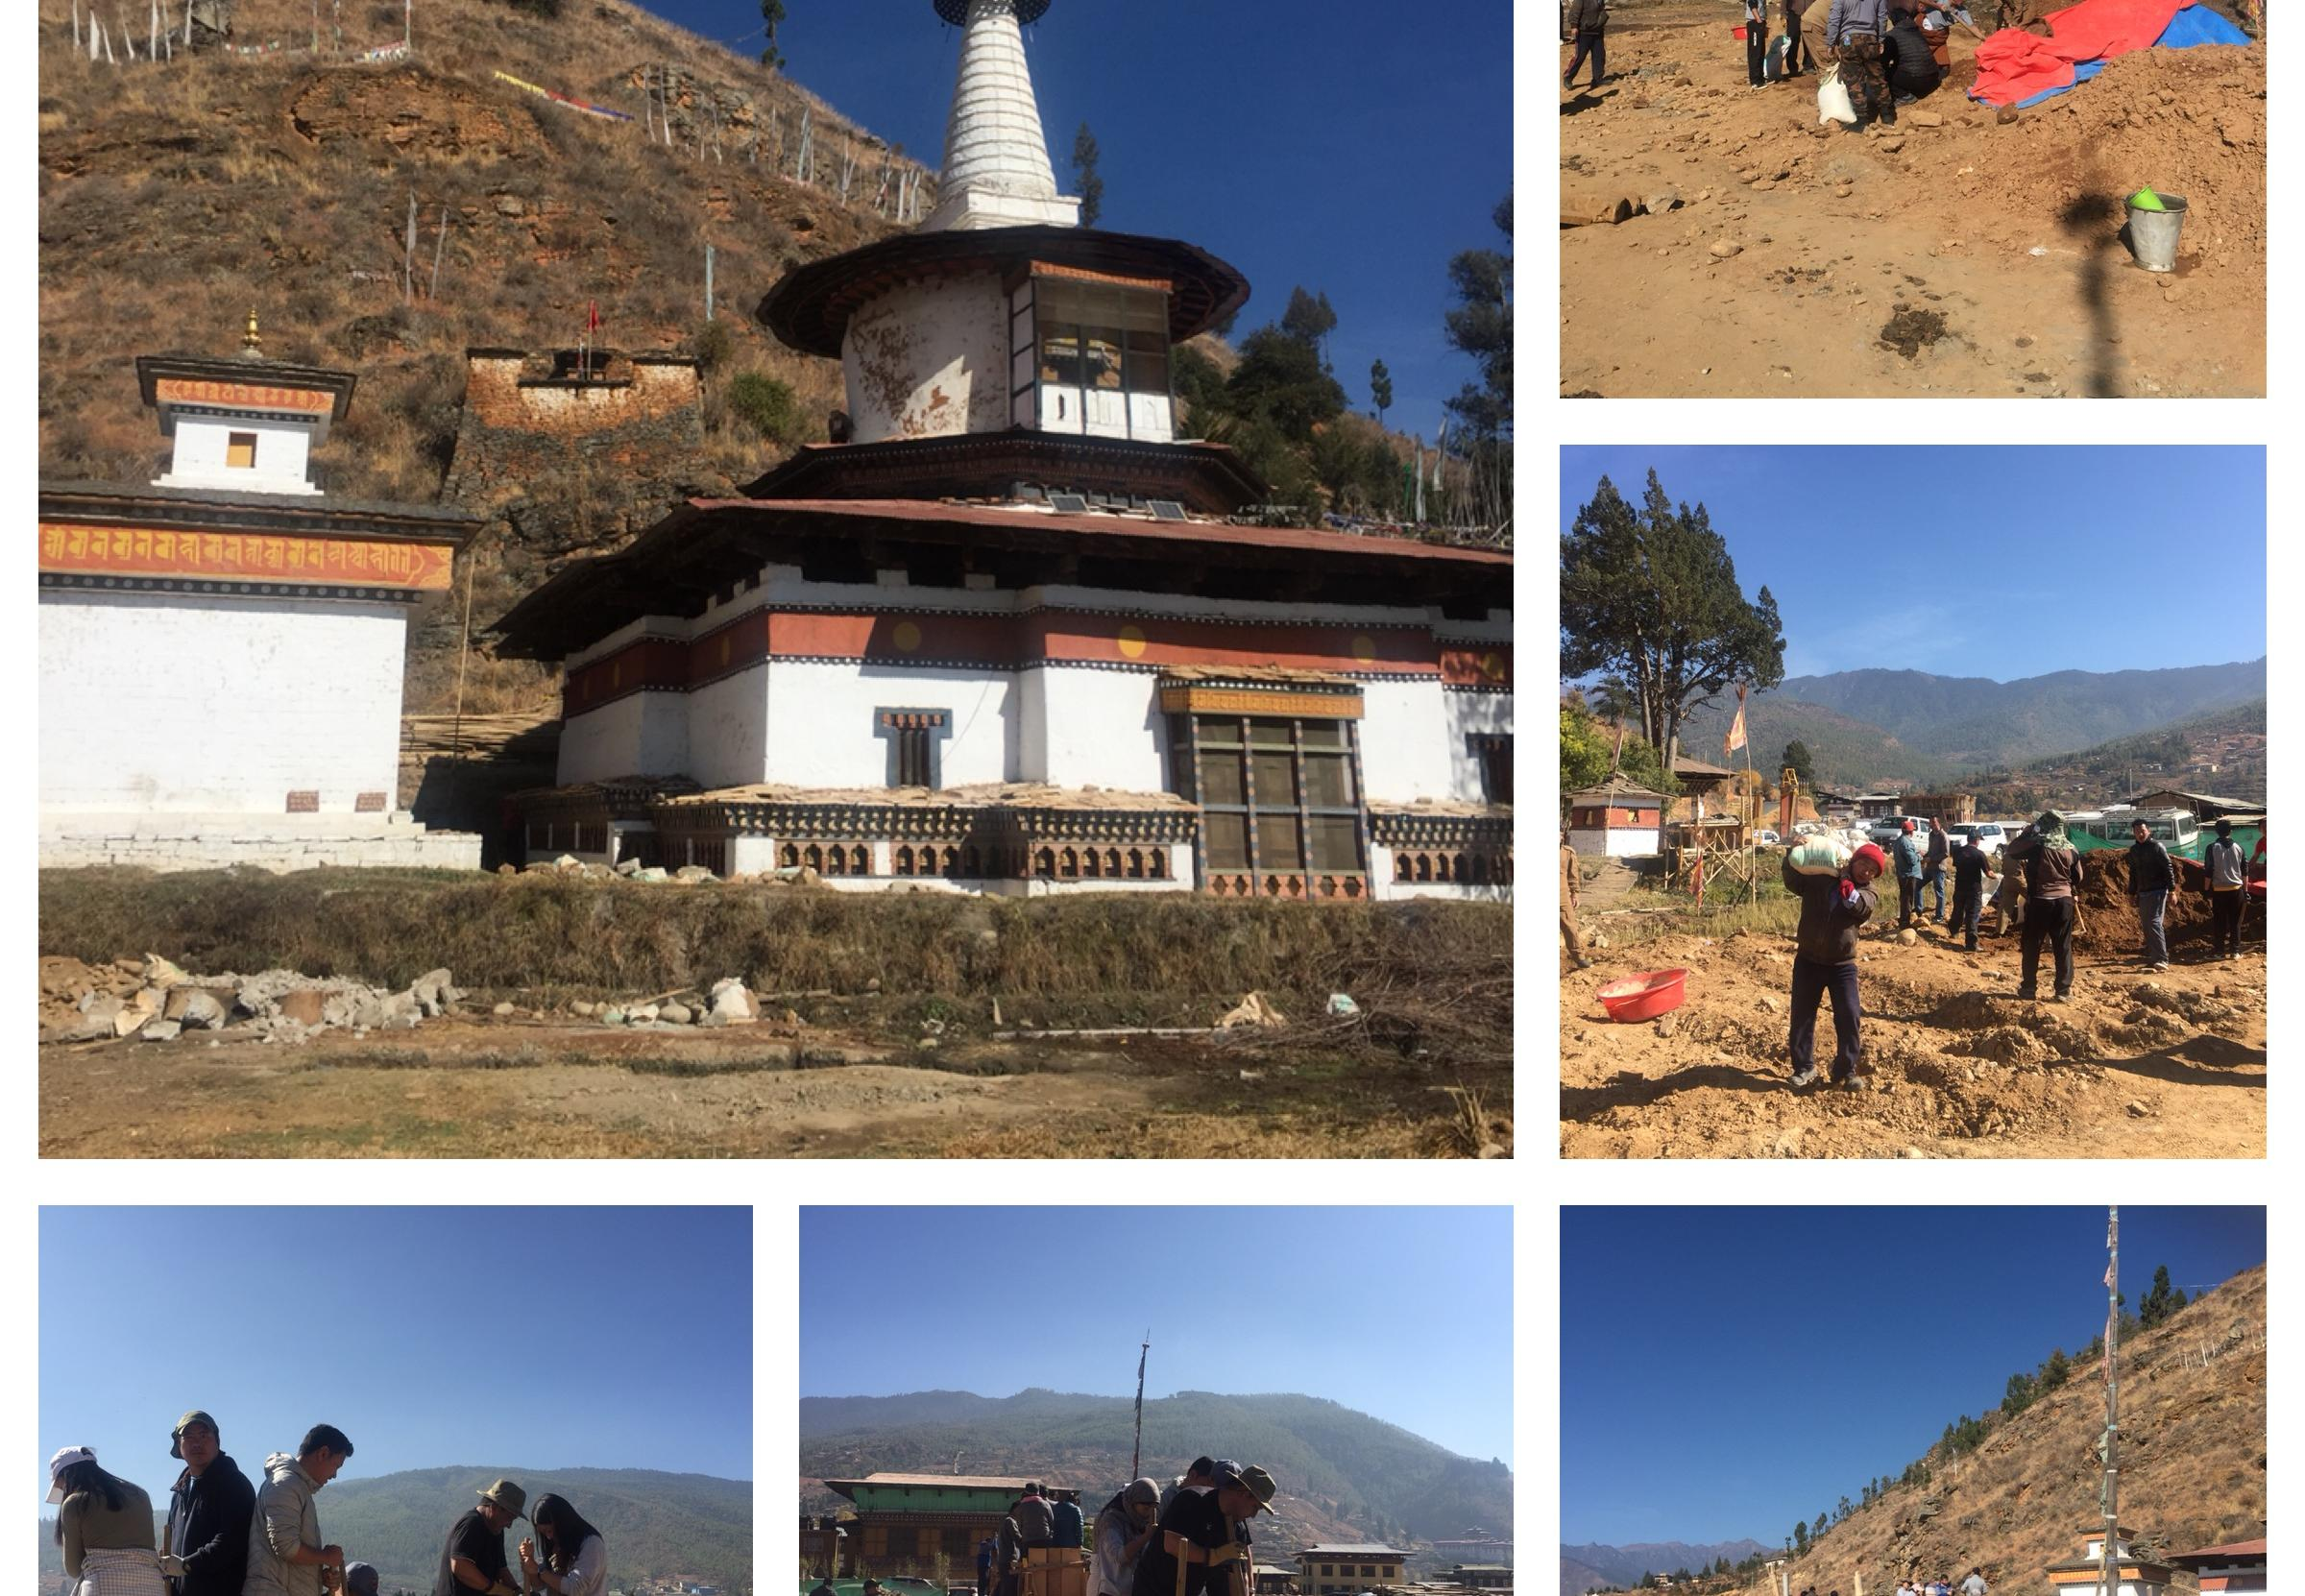 Dungtse Lhakhang undergoing Renovation Works